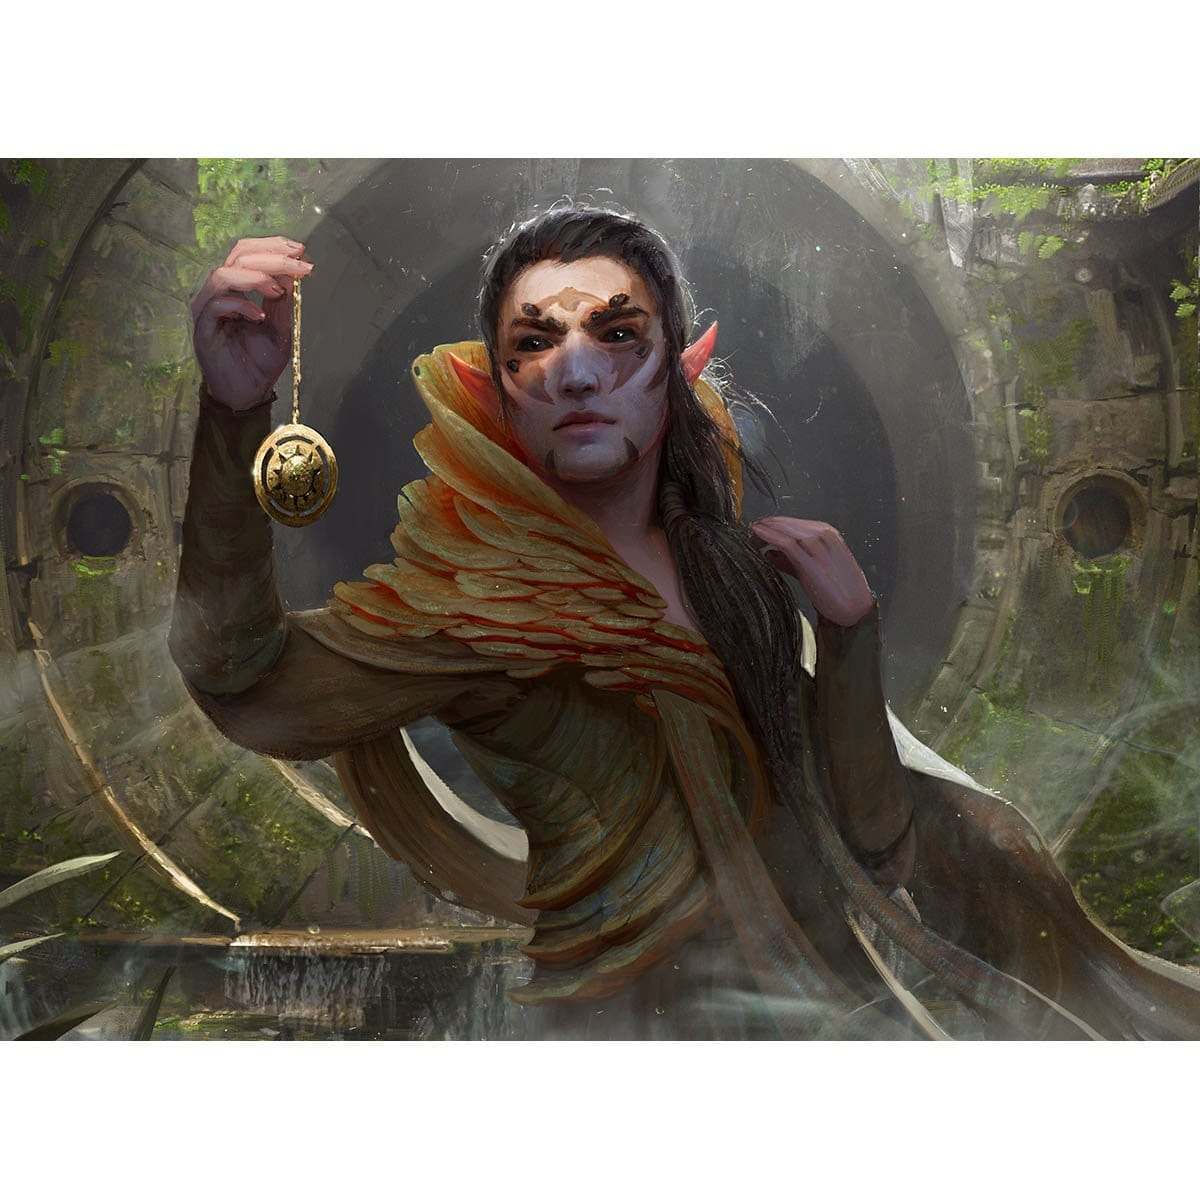 Golgari Findbroker Print - Print - Original Magic Art - Accessories for Magic the Gathering and other card games